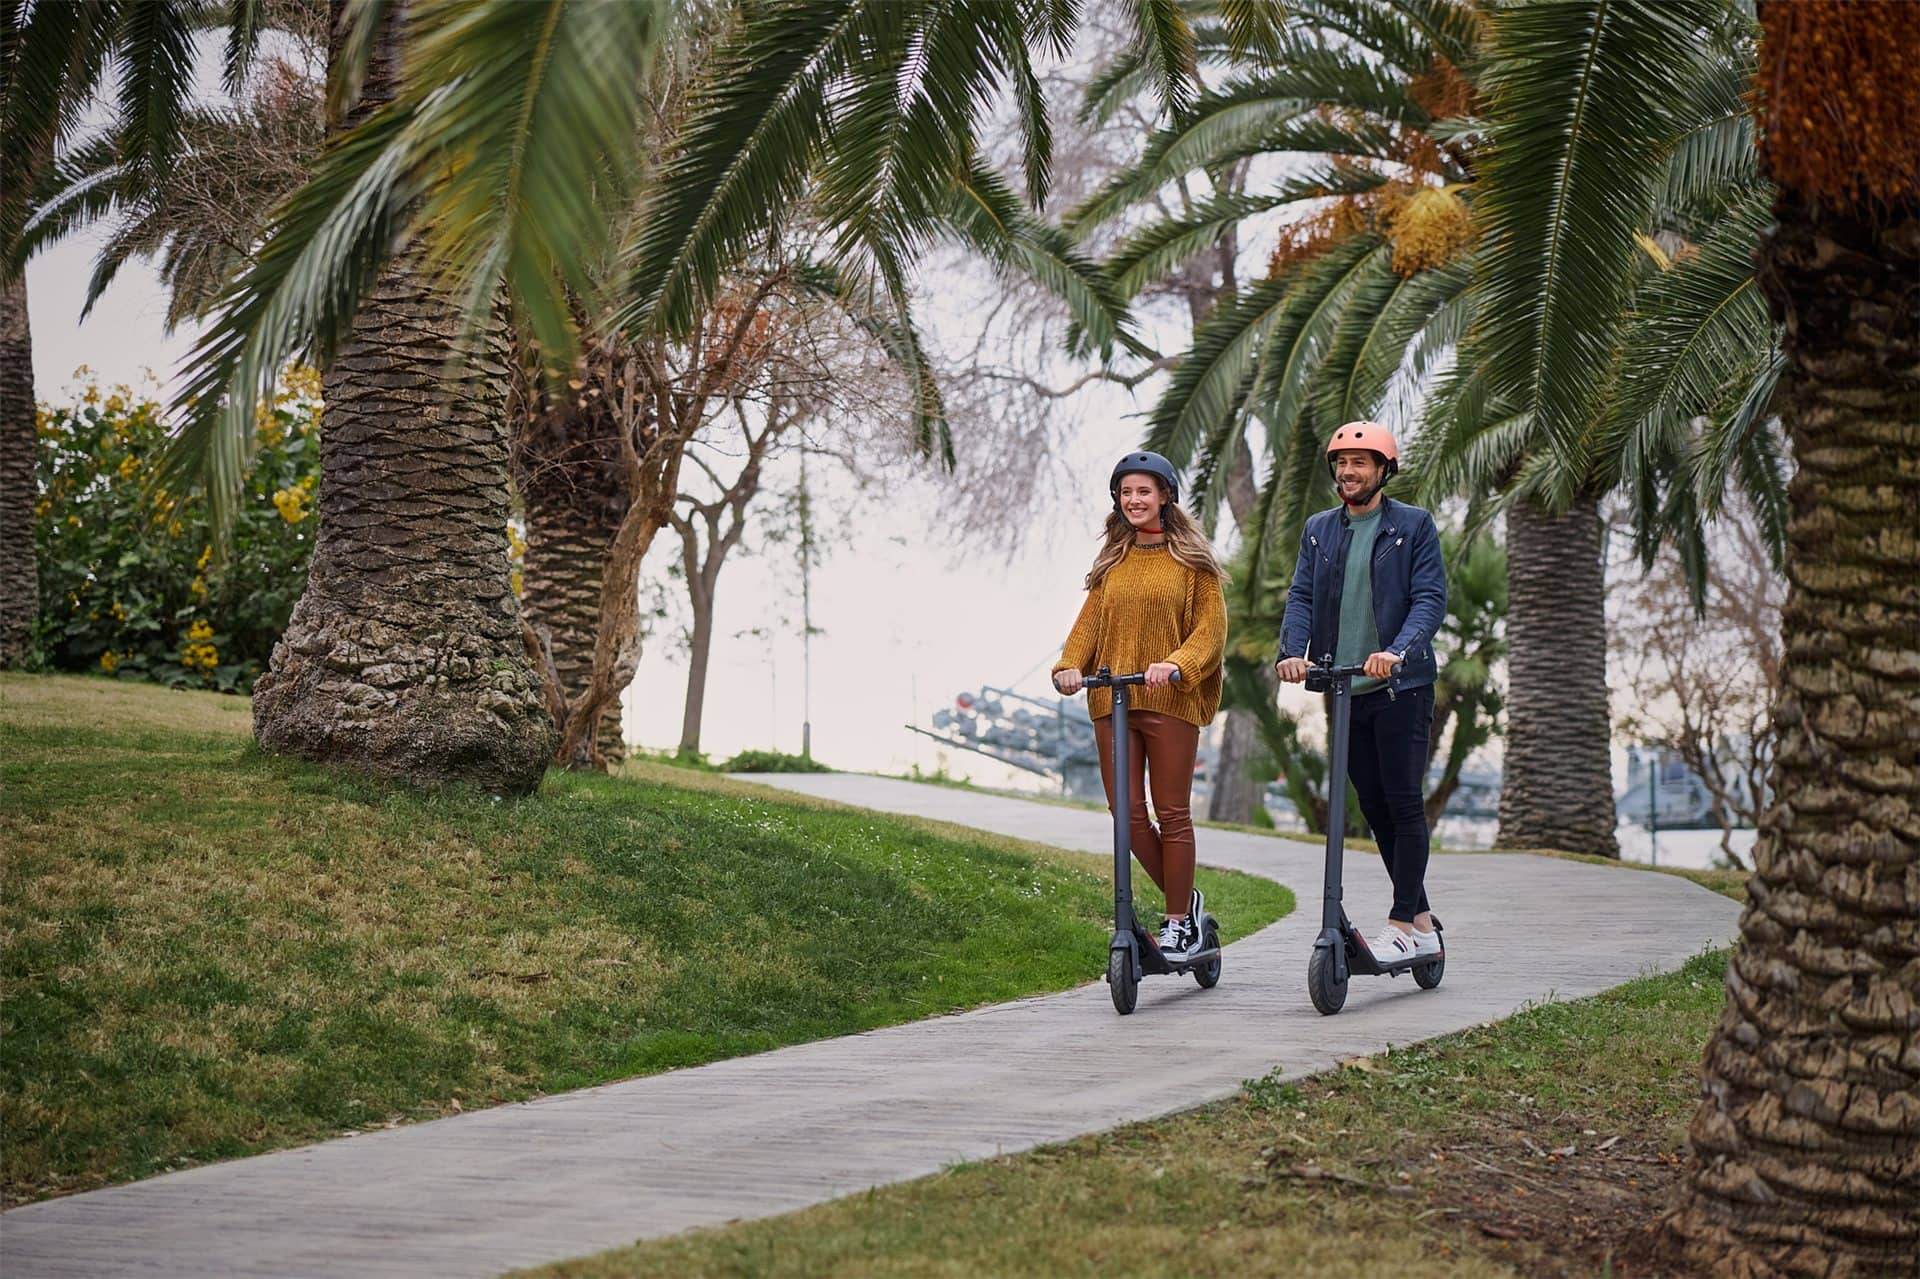 Segway-Ninebot KickScooter E22 launches in Australia